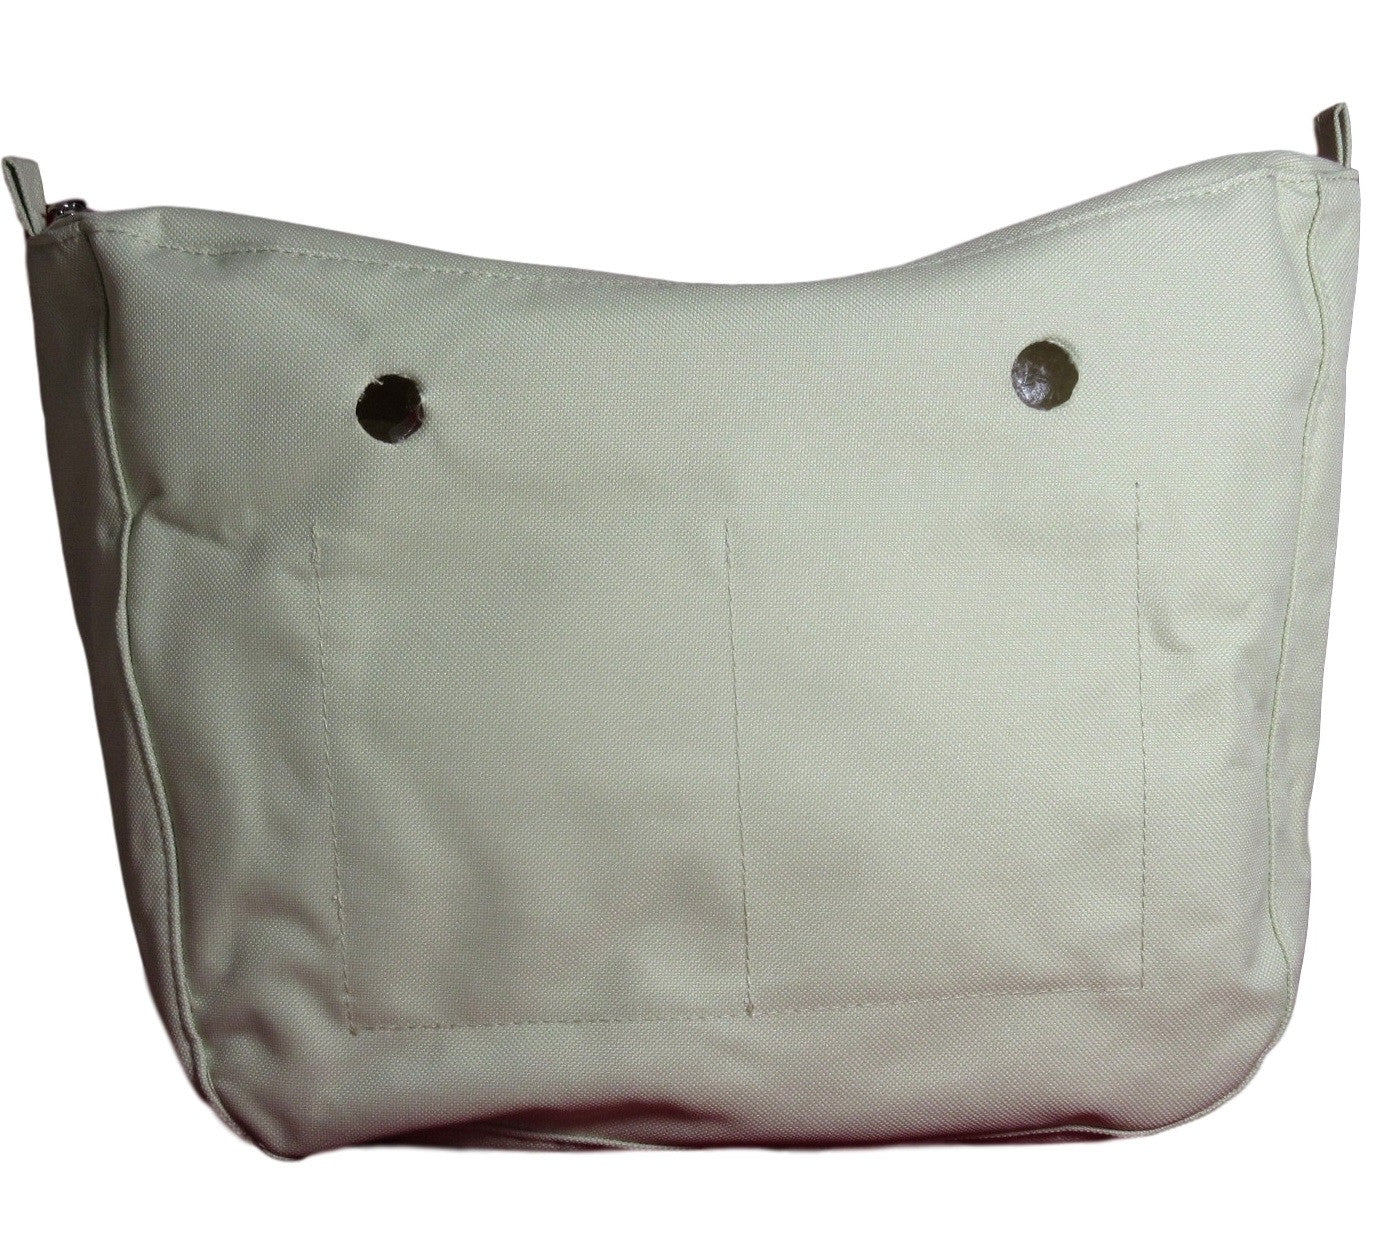 SLO Fashion Grande zippered Insert Bag